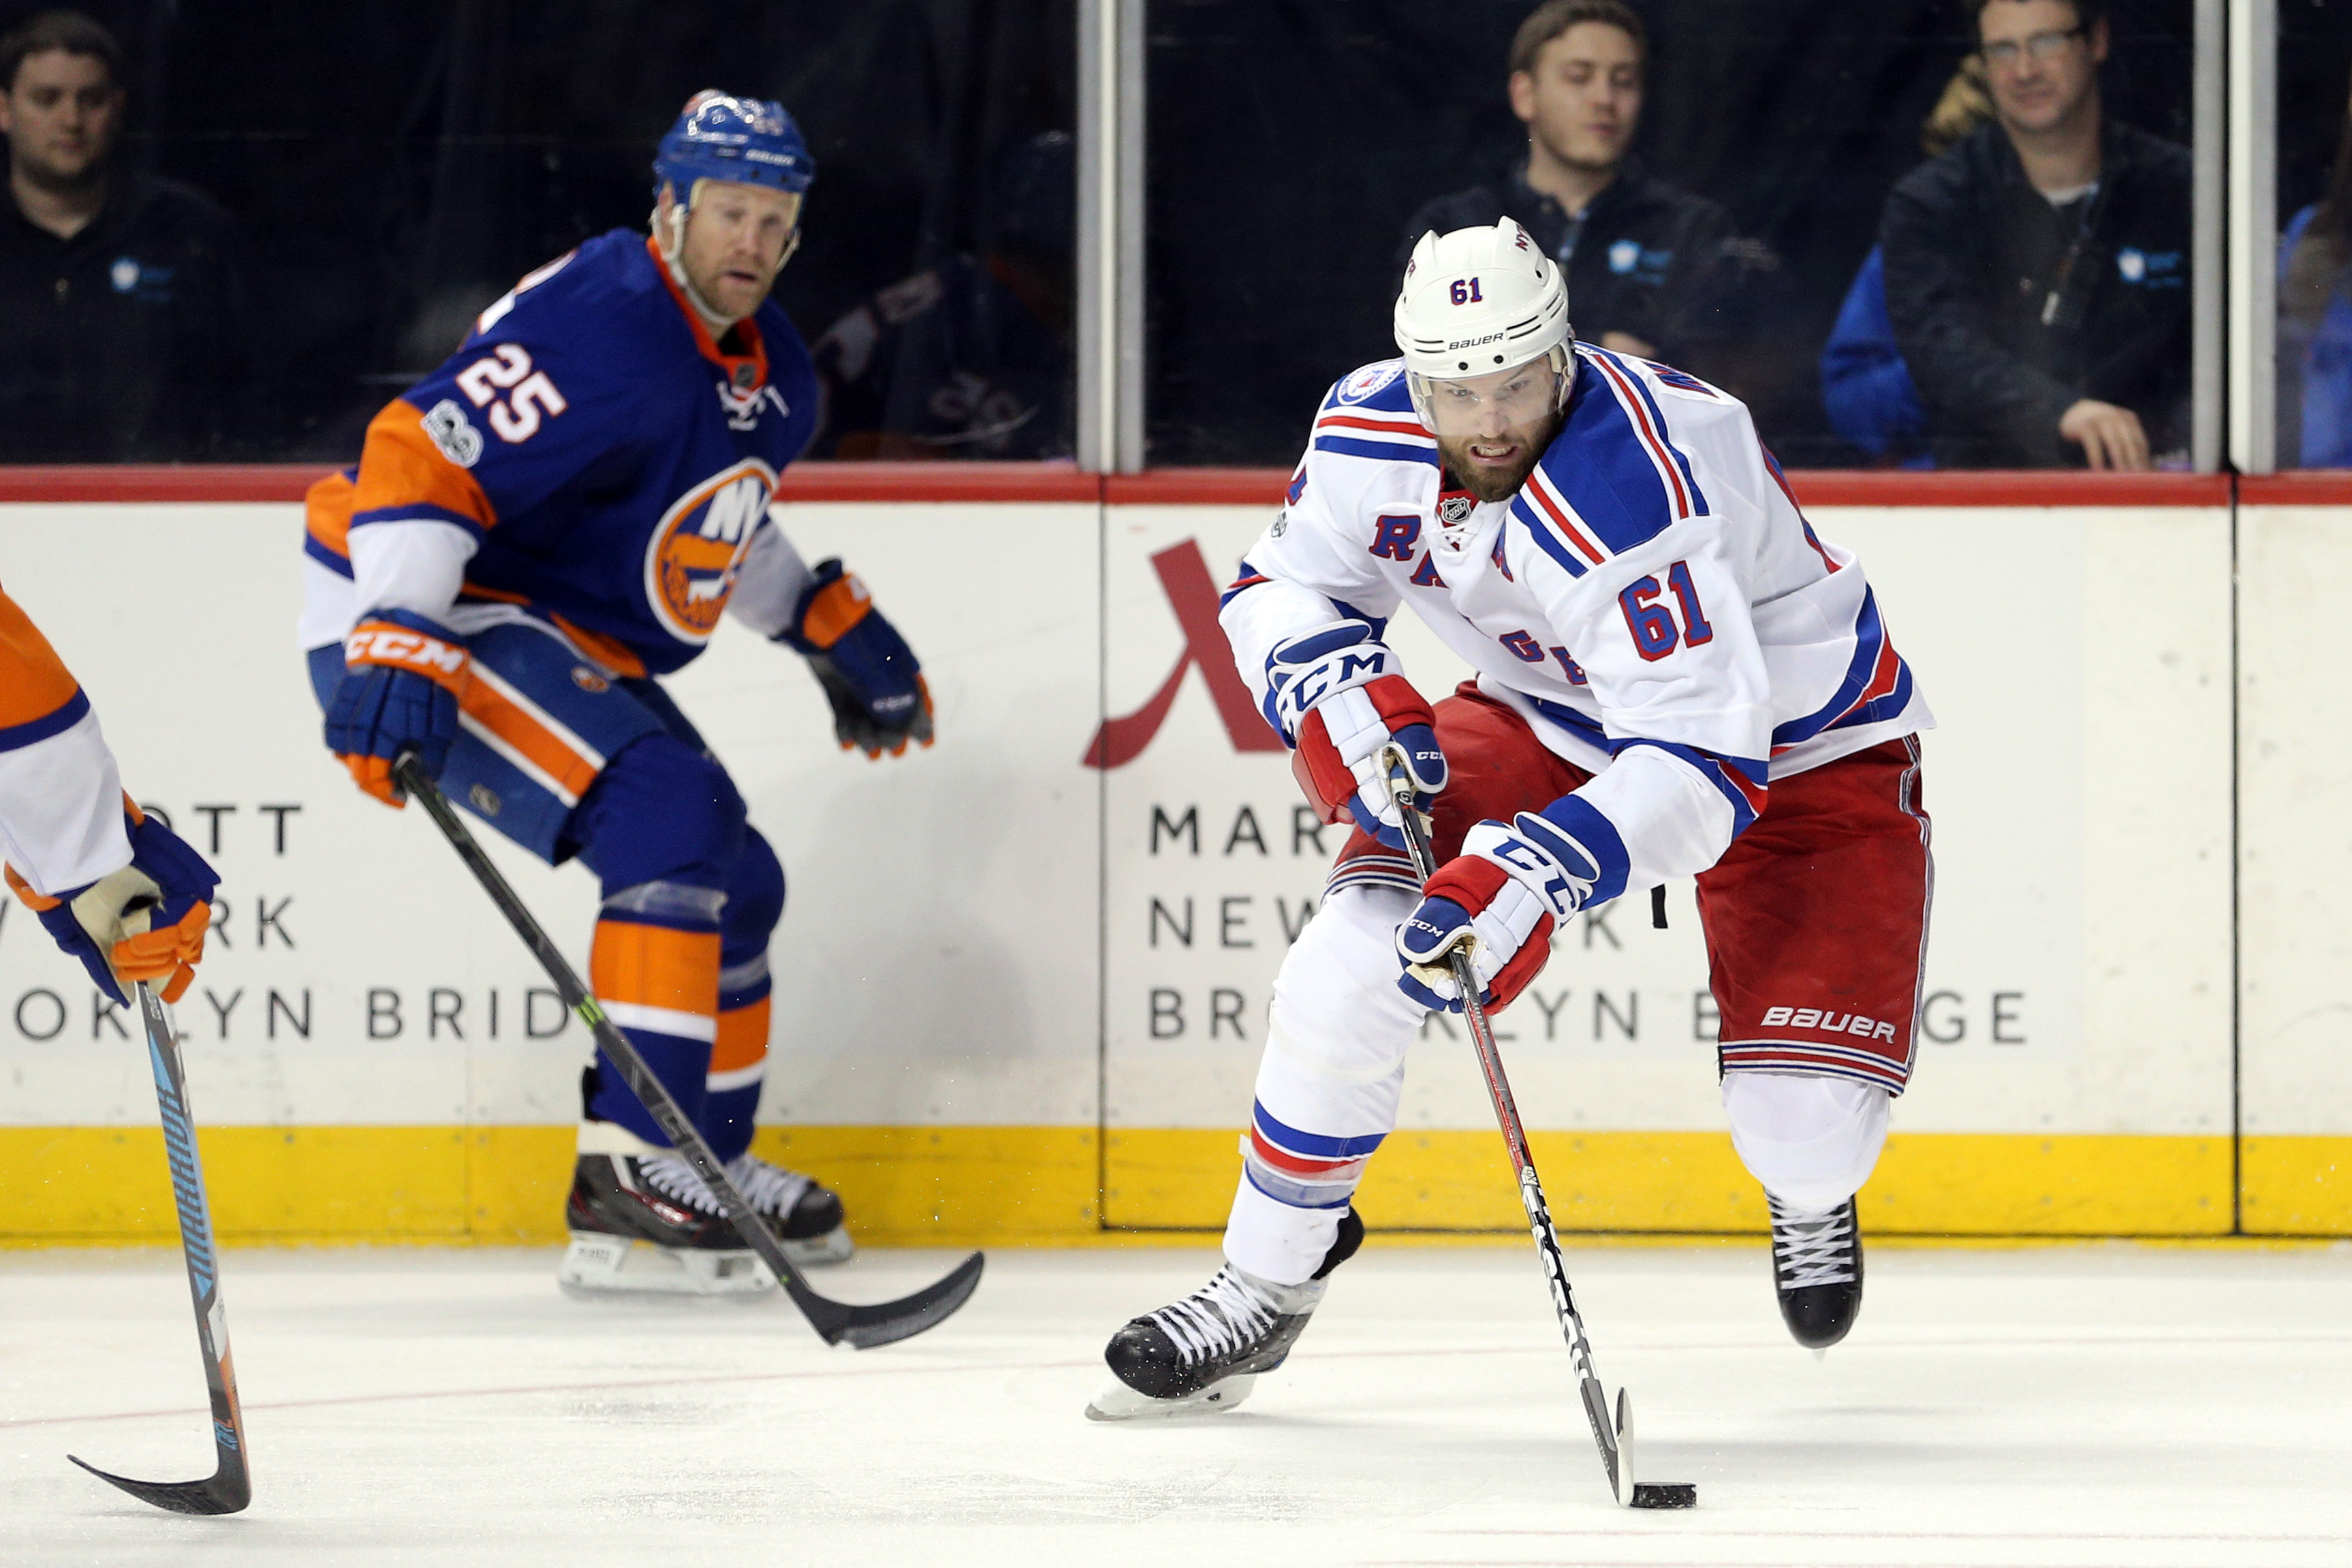 9881433-nhl-new-york-rangers-at-new-york-islanders